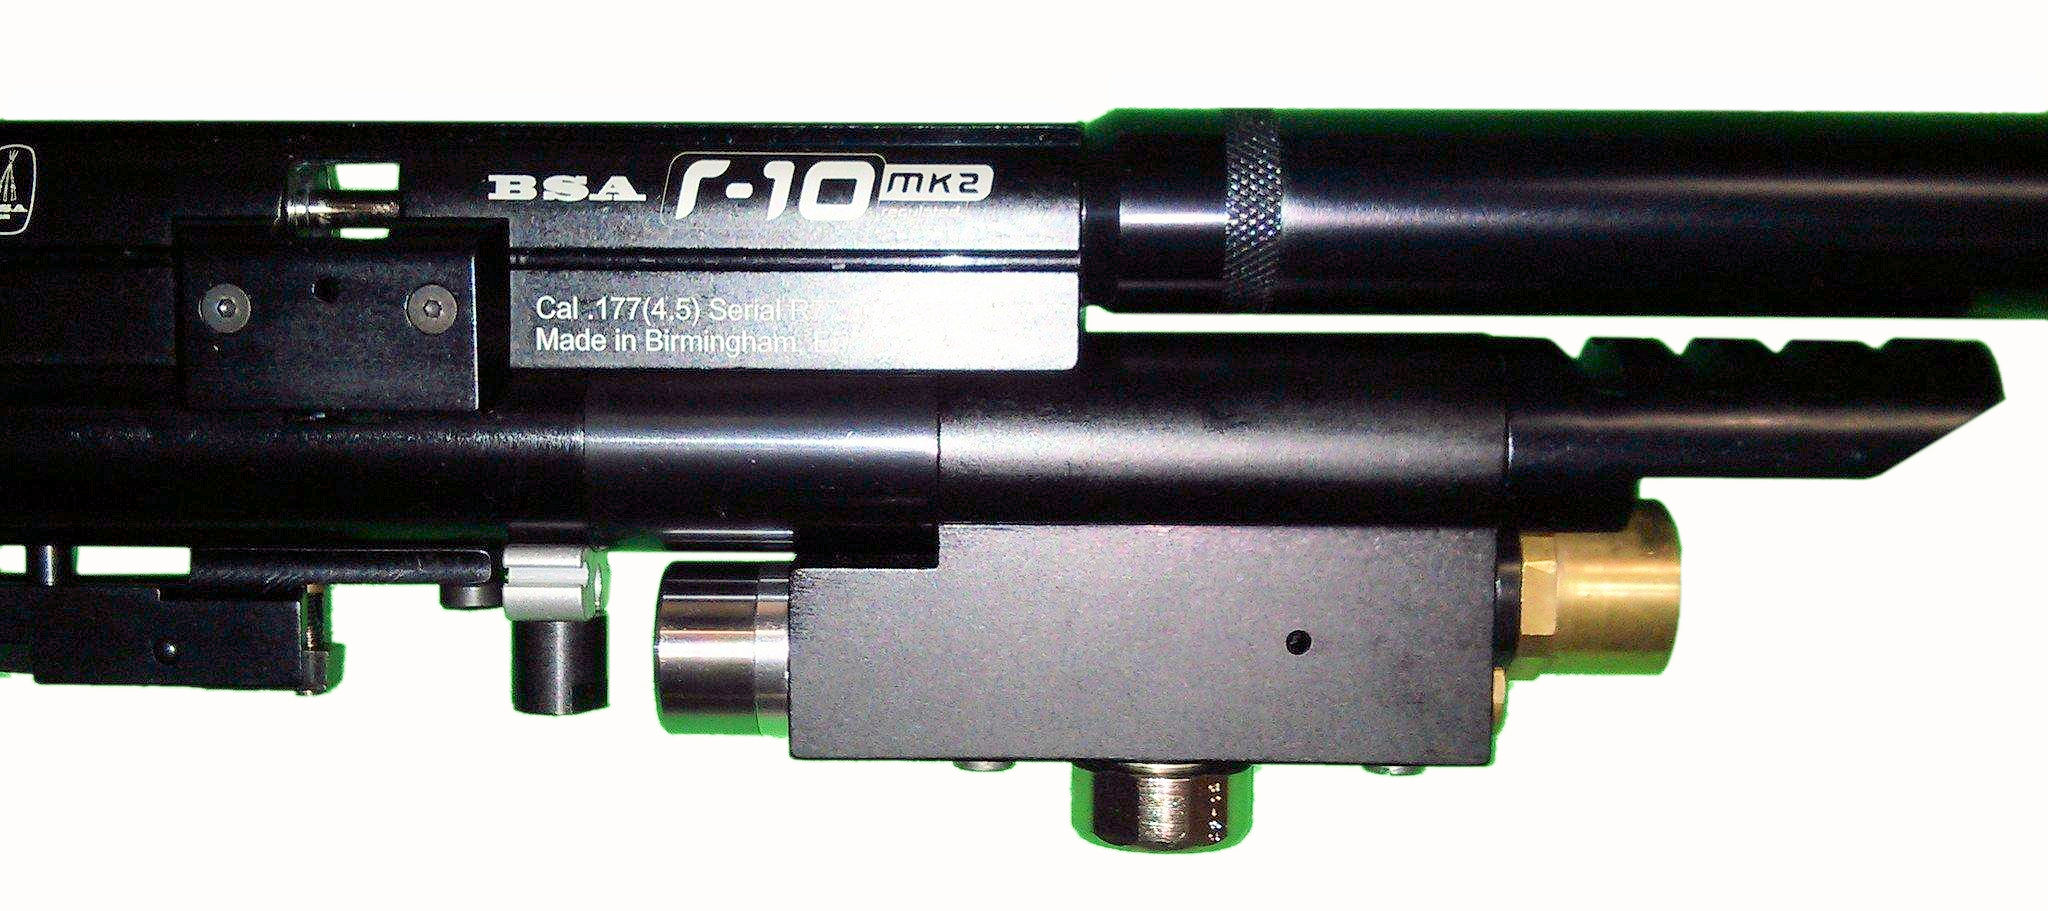 HuMa regulator fitted to an R-10 (for reference)